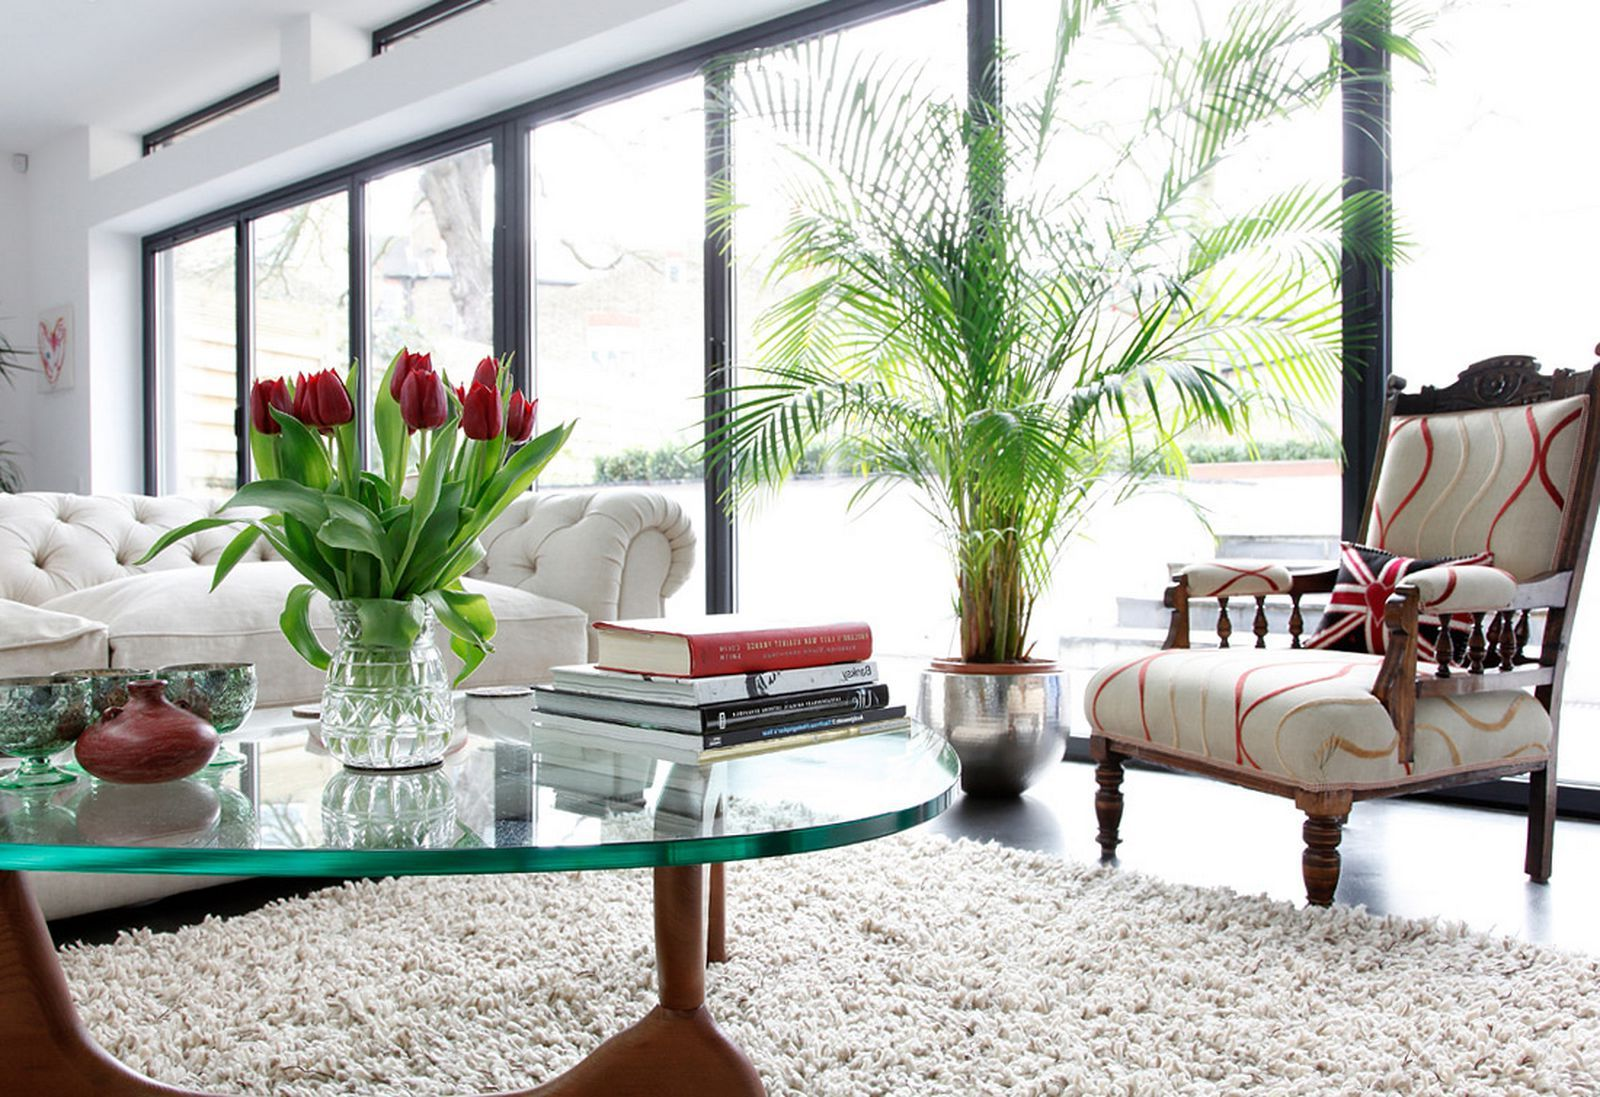 White Minimalist Family Room Decorating Ideas With White Sofa, Rug And Glass Table And Pretty Green Indoor Plants